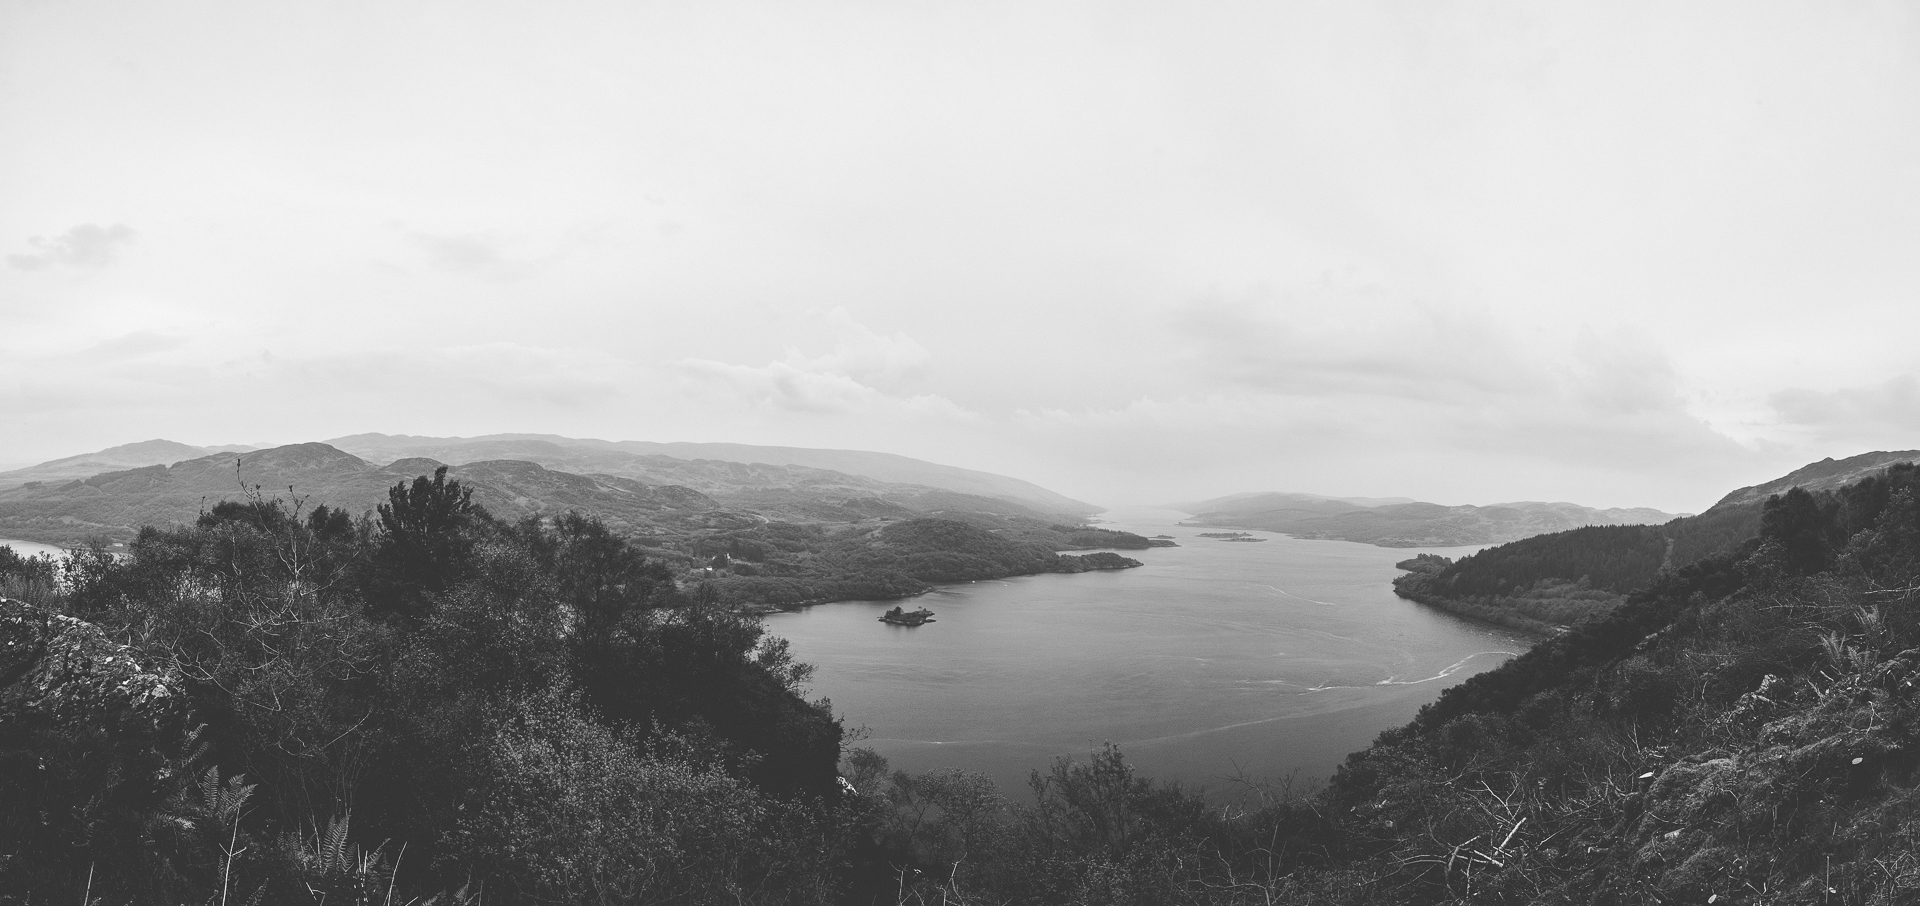 polphail, portavadie, argyll, tarbet, deserted, town, village, sinister, dark, creepy, eerie, photographs, black and white, scenery, landscape, view